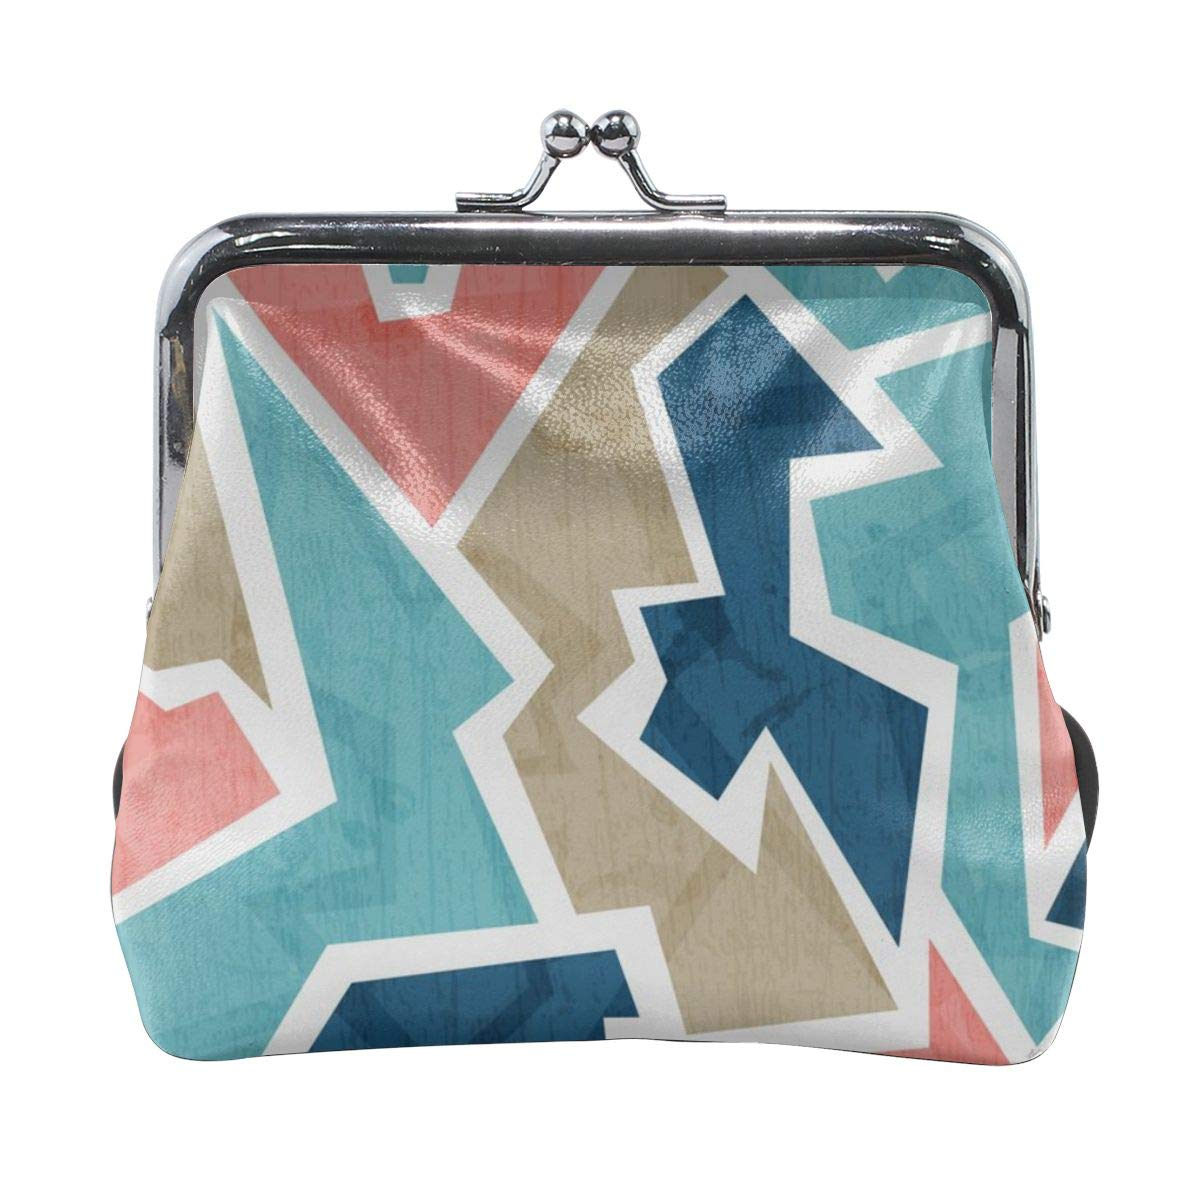 Yunshm Vintage Geometric Triangle Seamless Pattern Customized Retro Leather Cute Classic Floral Coin Purse Clutch Pouch Wallet For Girls And Womens